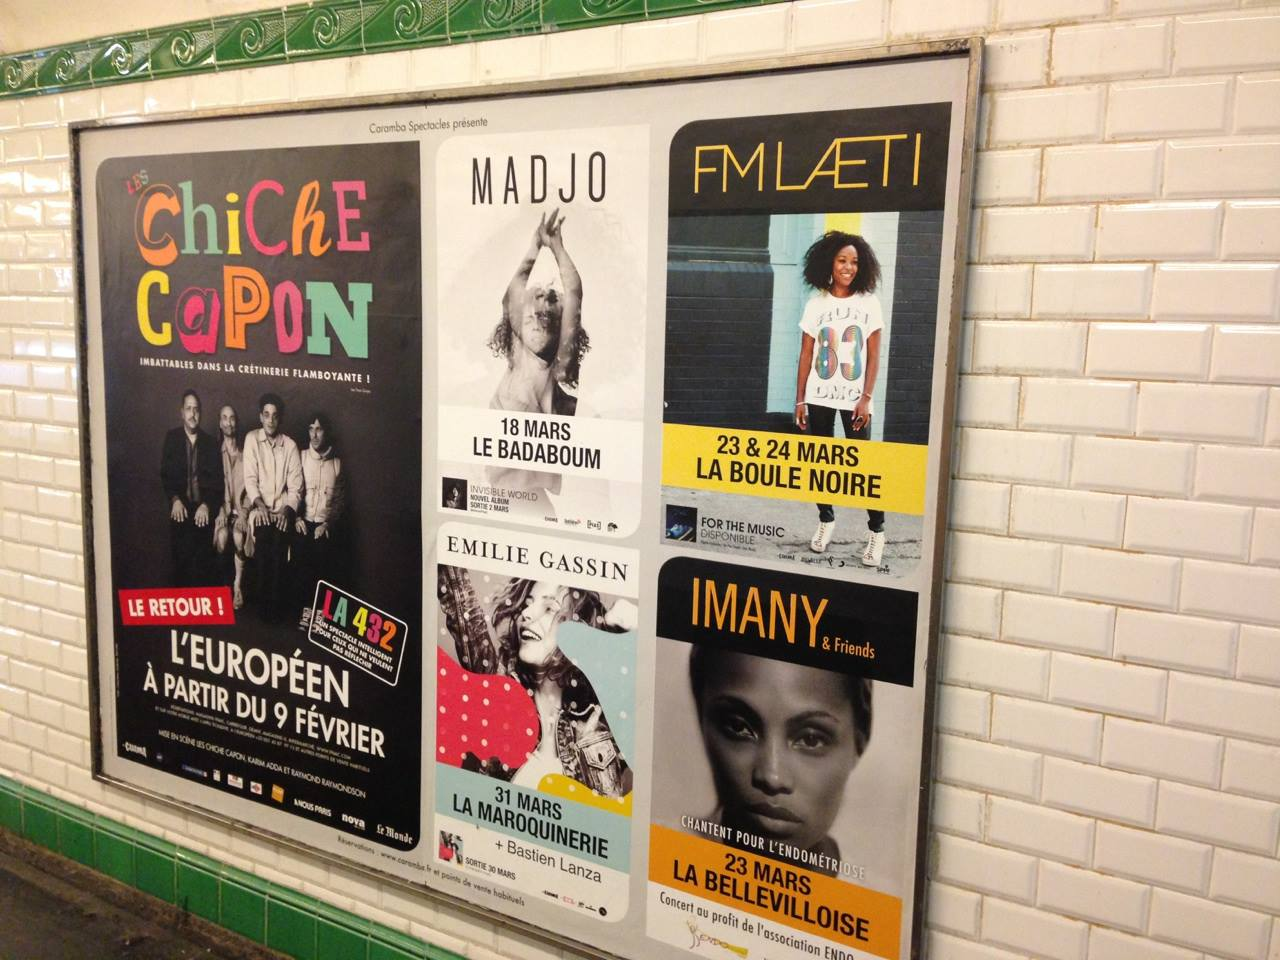 IMANY charity concert-poster metro